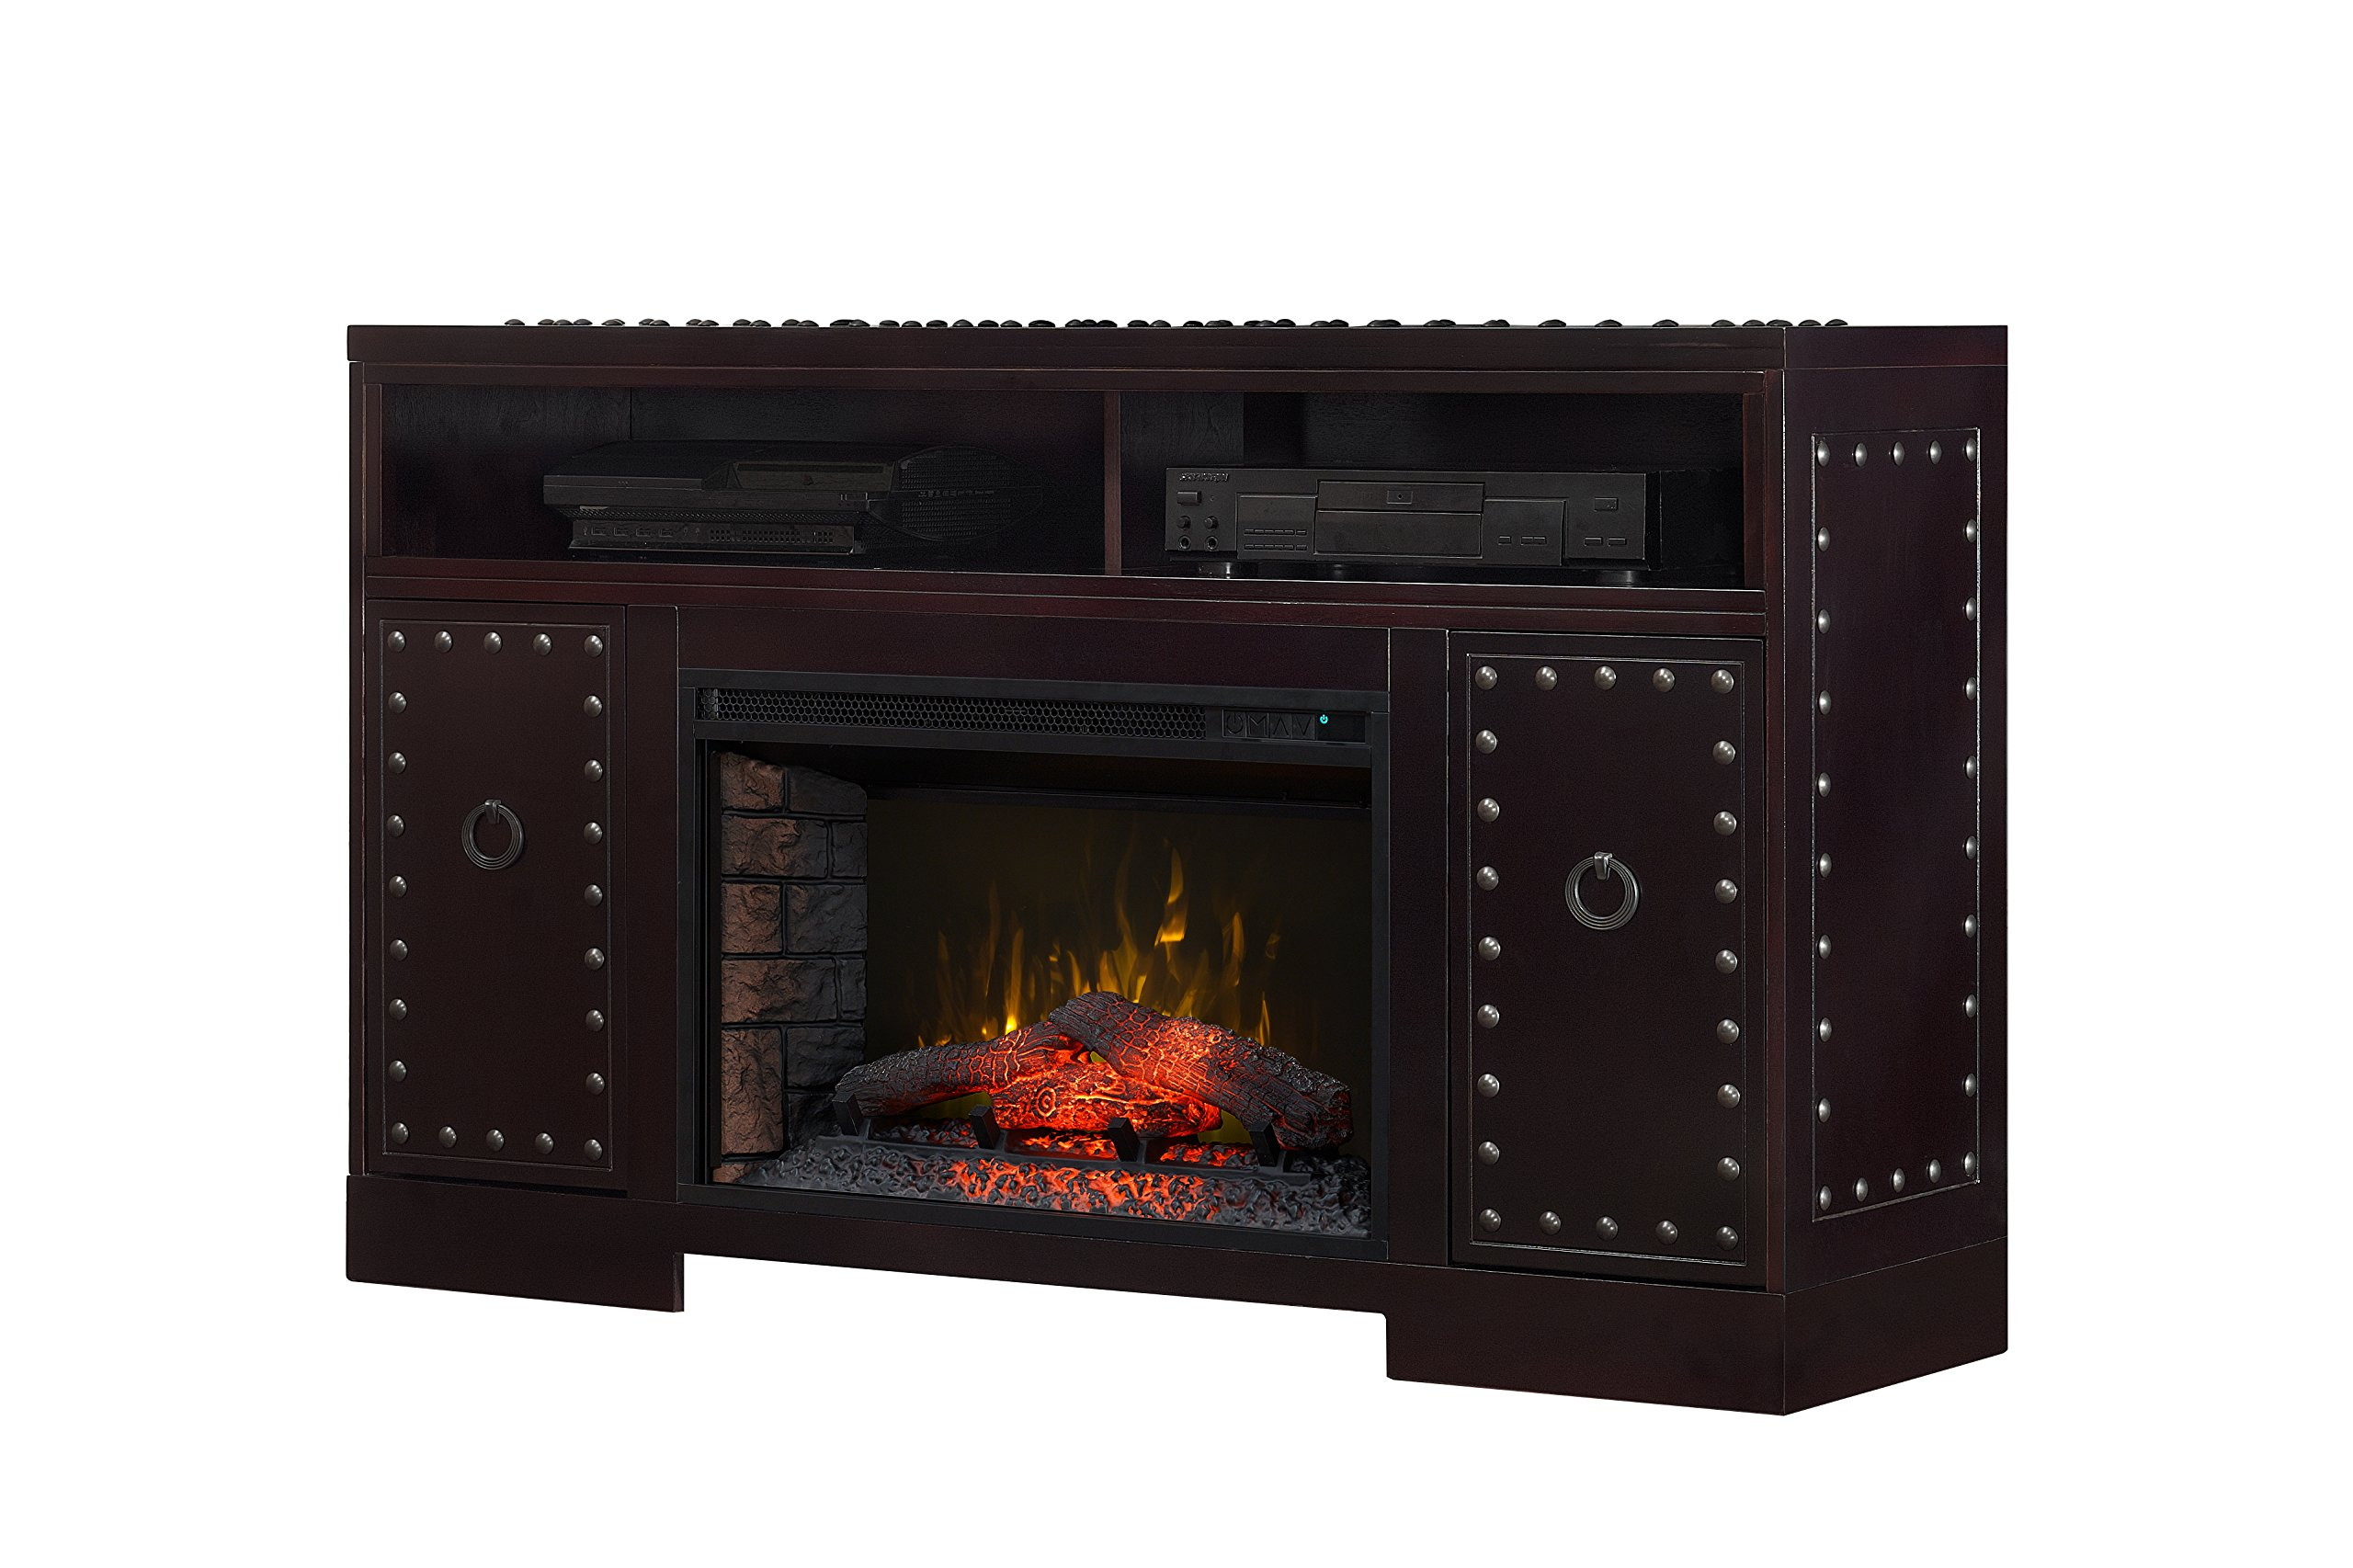 BoldFlame Fornax 53'' Media Console Electric Fireplace with Decorative Nailhead Trim and Remote Control, Rich Espresso